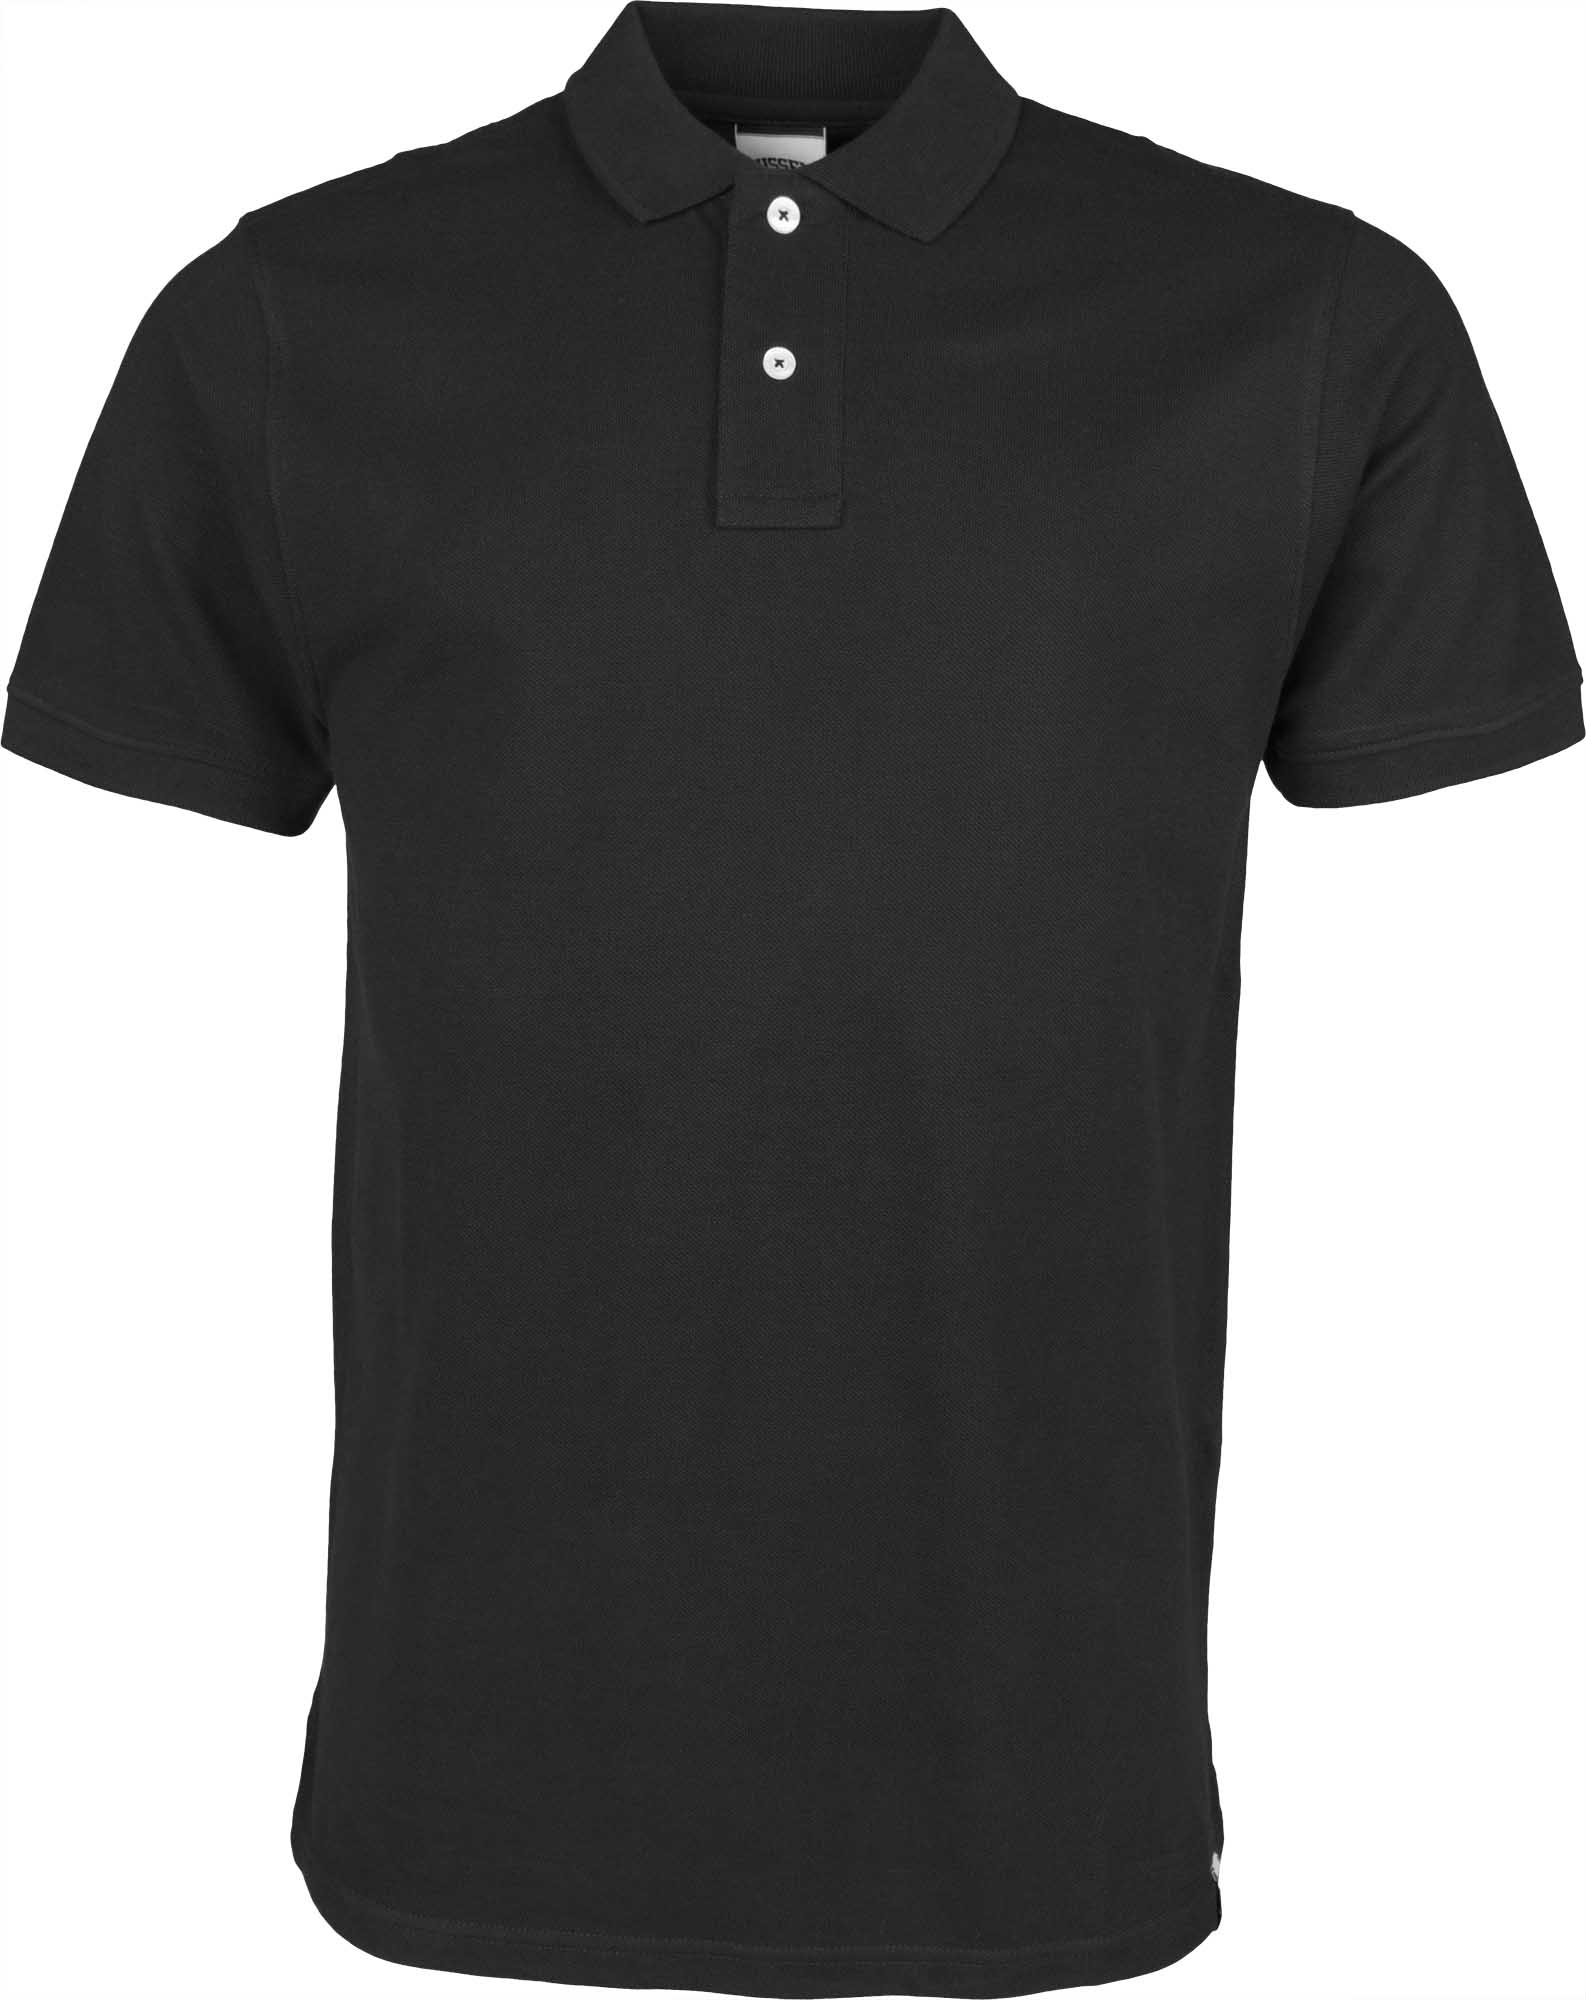 Russell Athletic CLASSIC FIT POLO  4c3f16f59f5